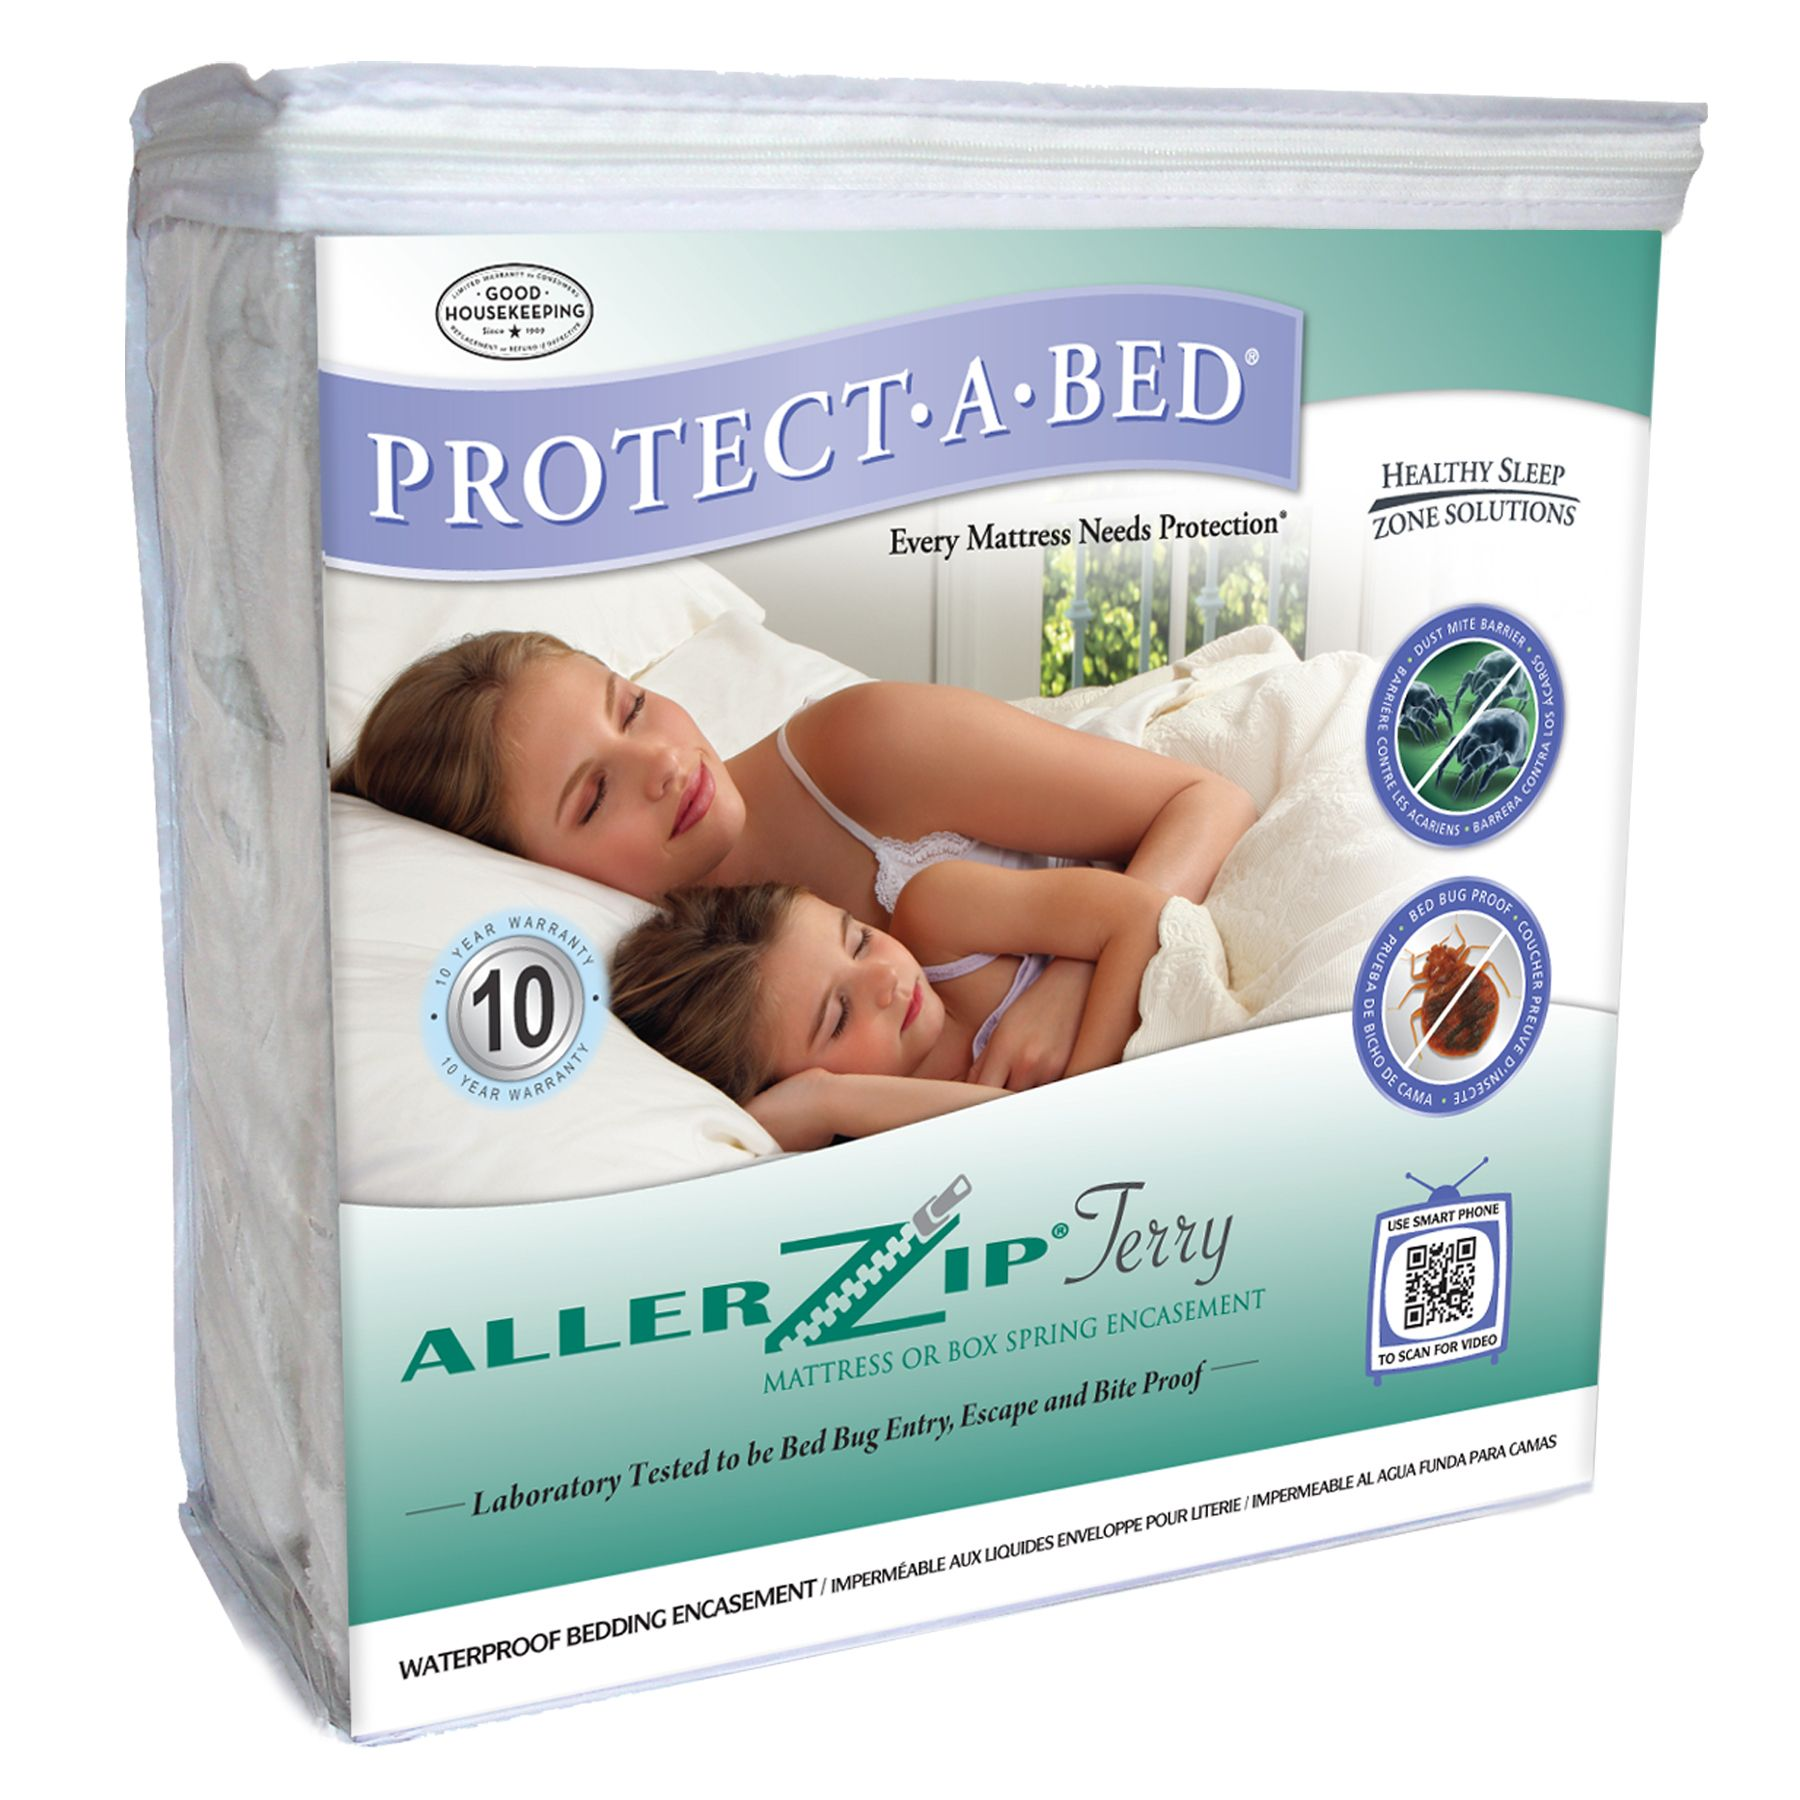 ALLER ZIP (TERRY) Mattress or Box Spring